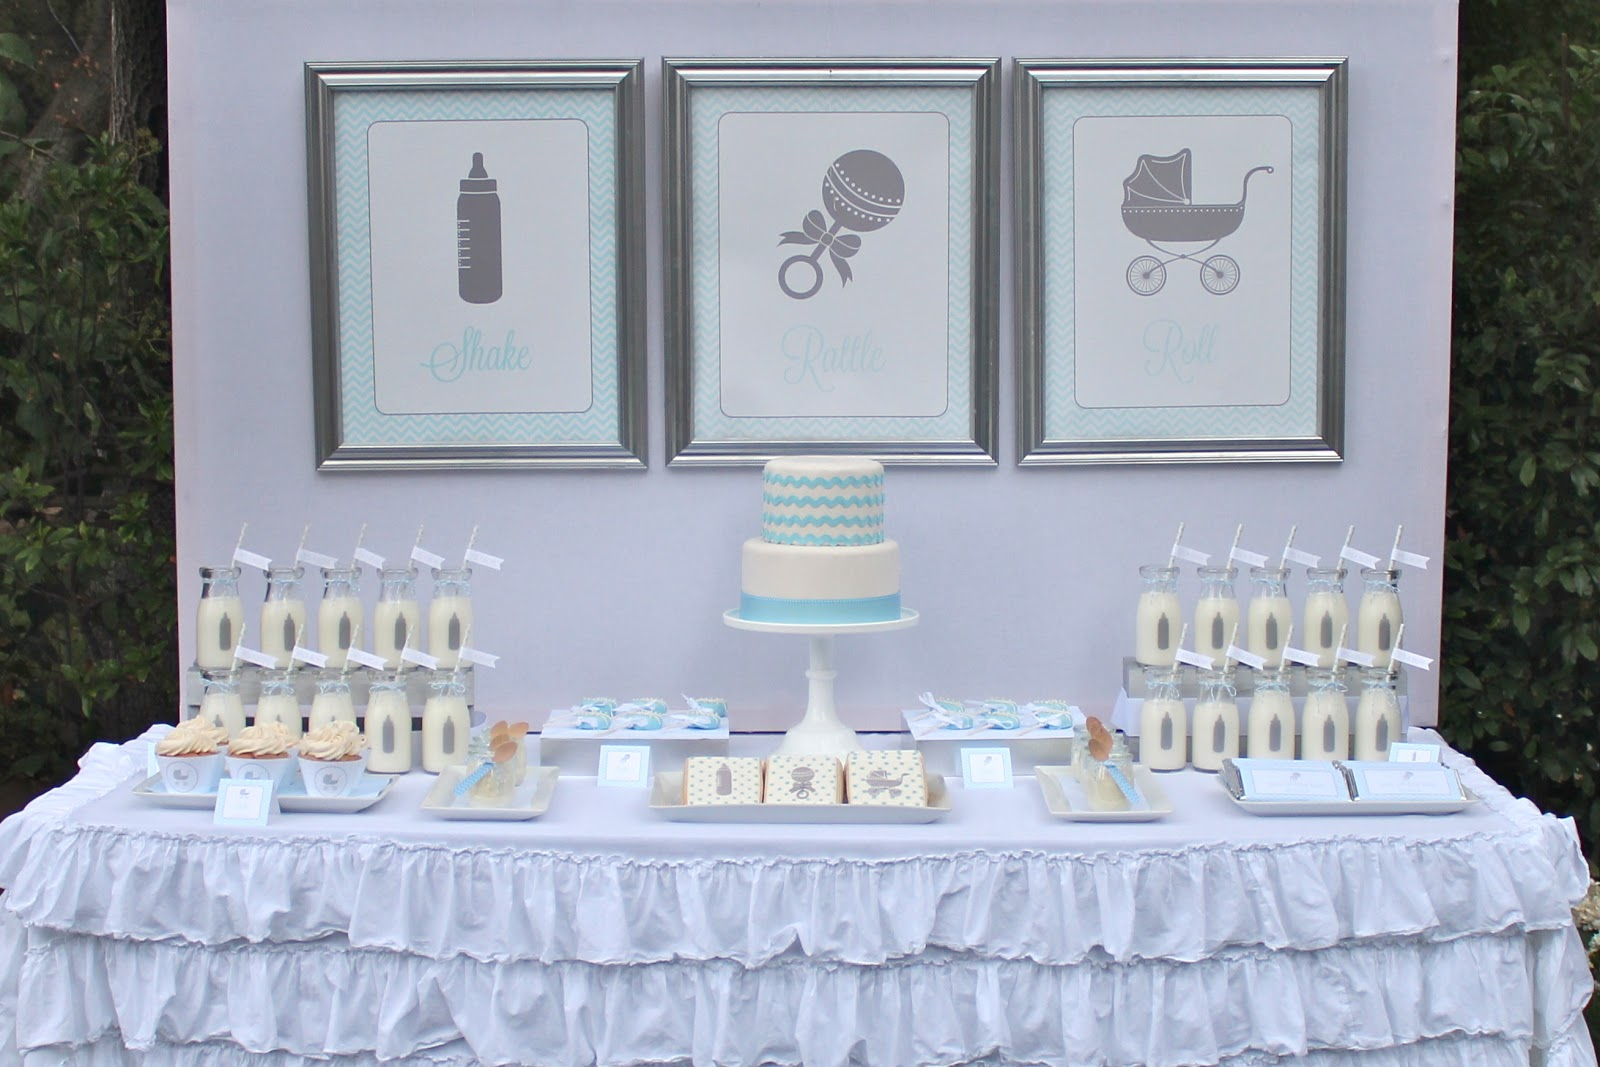 I Was So Excited And Honored To Plan And Host A Baby Shower For My Sister,  Nicole, Who Is Having Her First Baby. Nicole Came Up With The Theme Of The  Party, ...